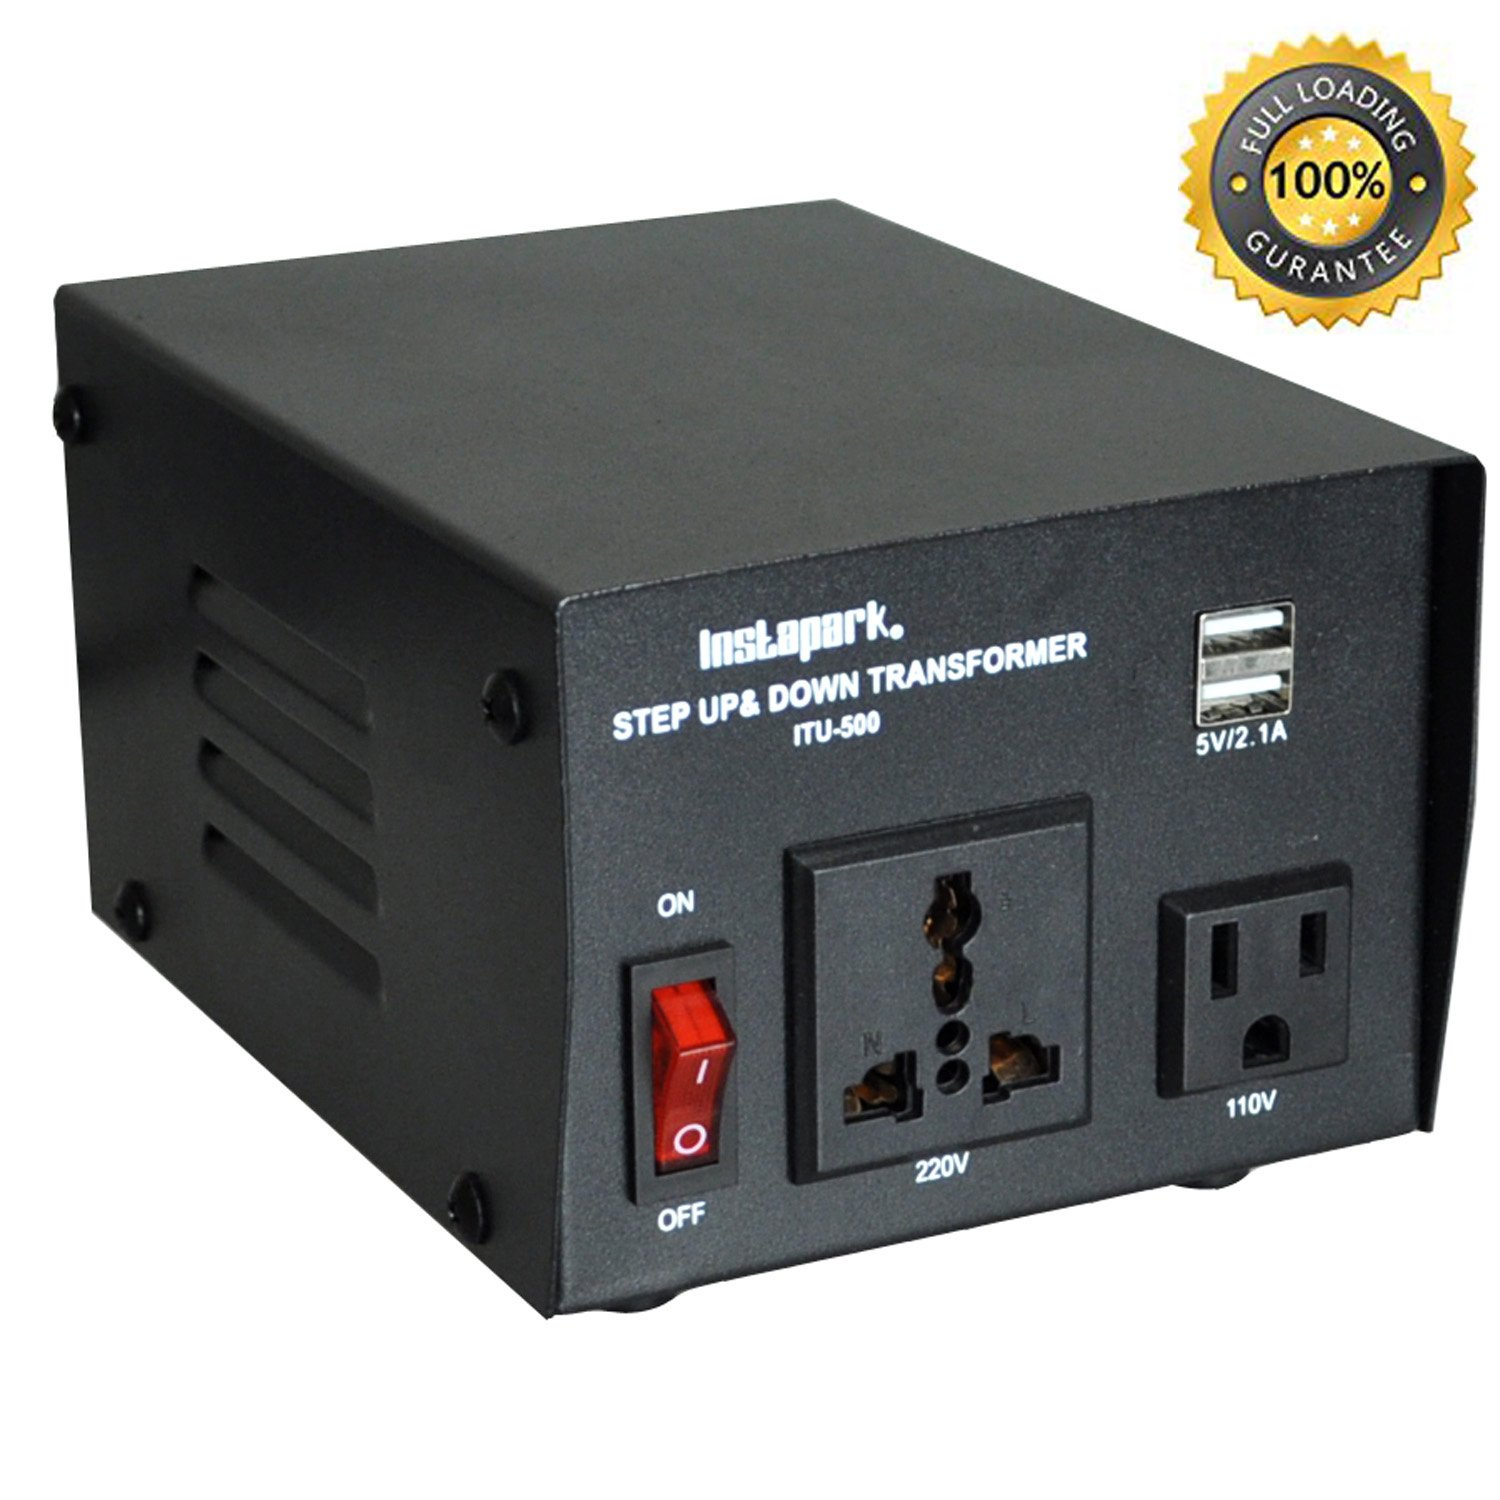 Instapark ITU-500 Voltage Converter: AC 110V / 220V 500W Step-up and Step-Down AC Voltage Transformer with Maximum Load Capacity (MLC) - 500 Watts by Instapark (Image #1)